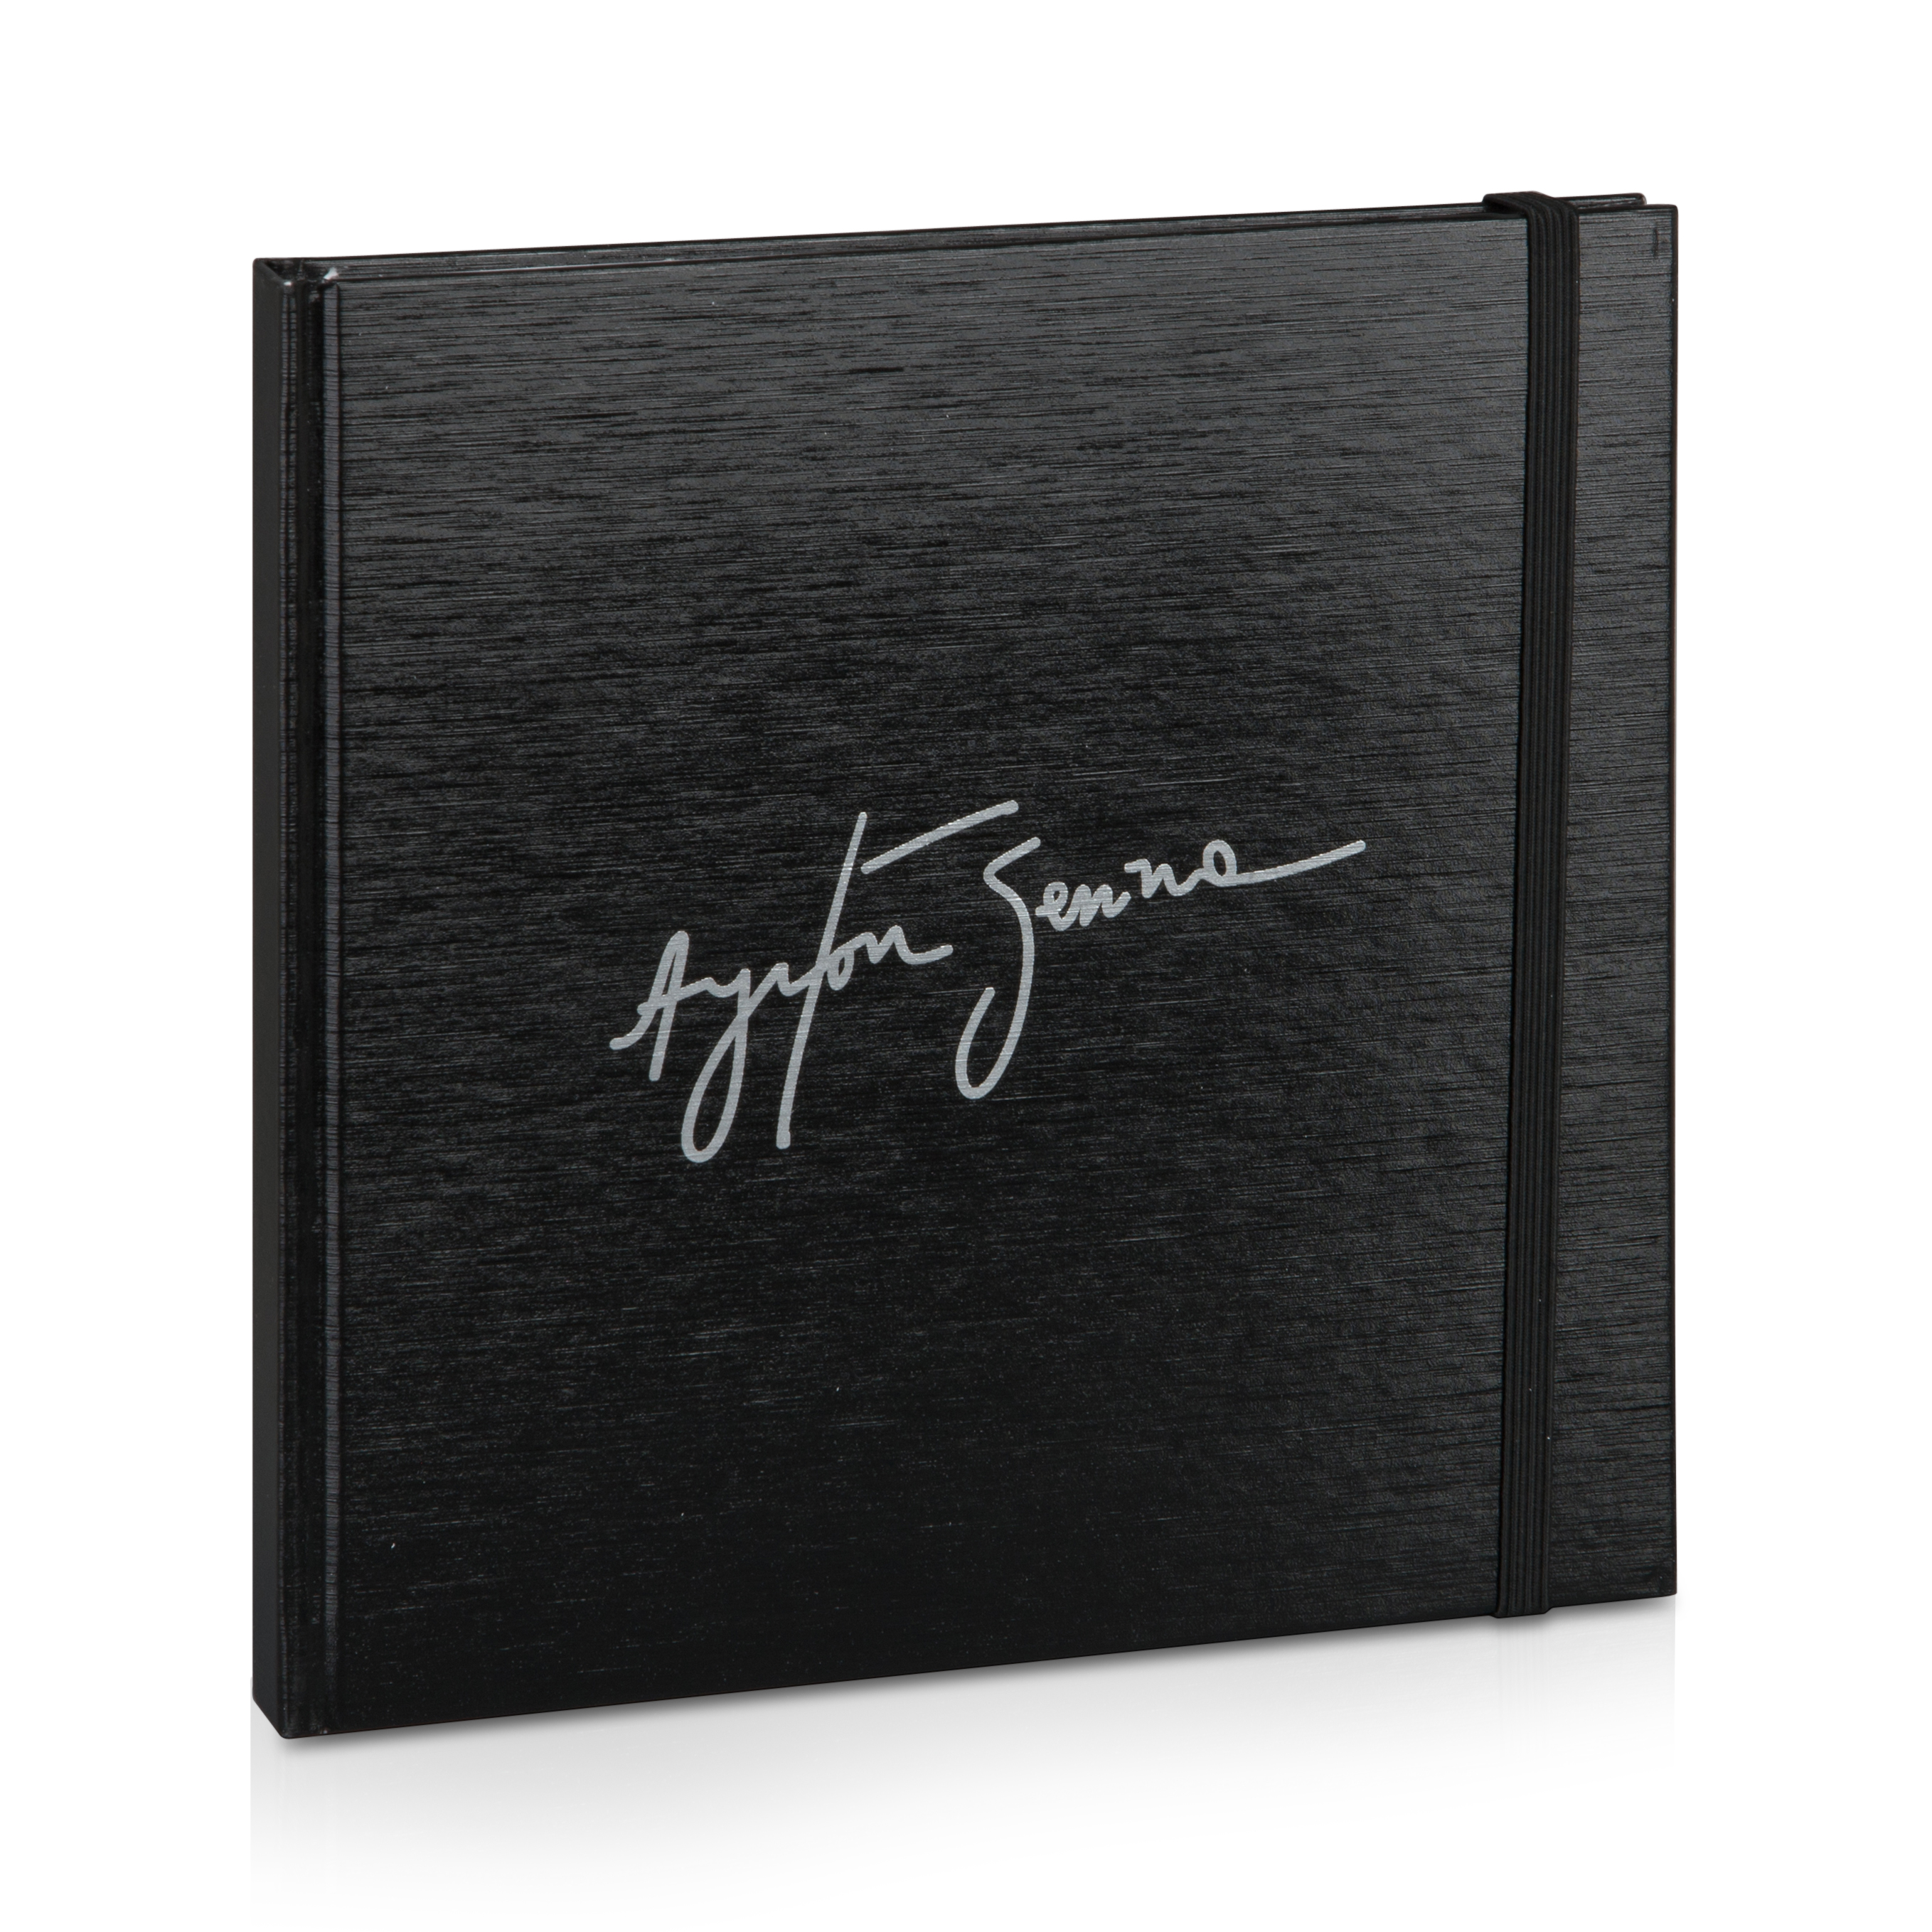 Ayrton Senna Note Book and Pen Set